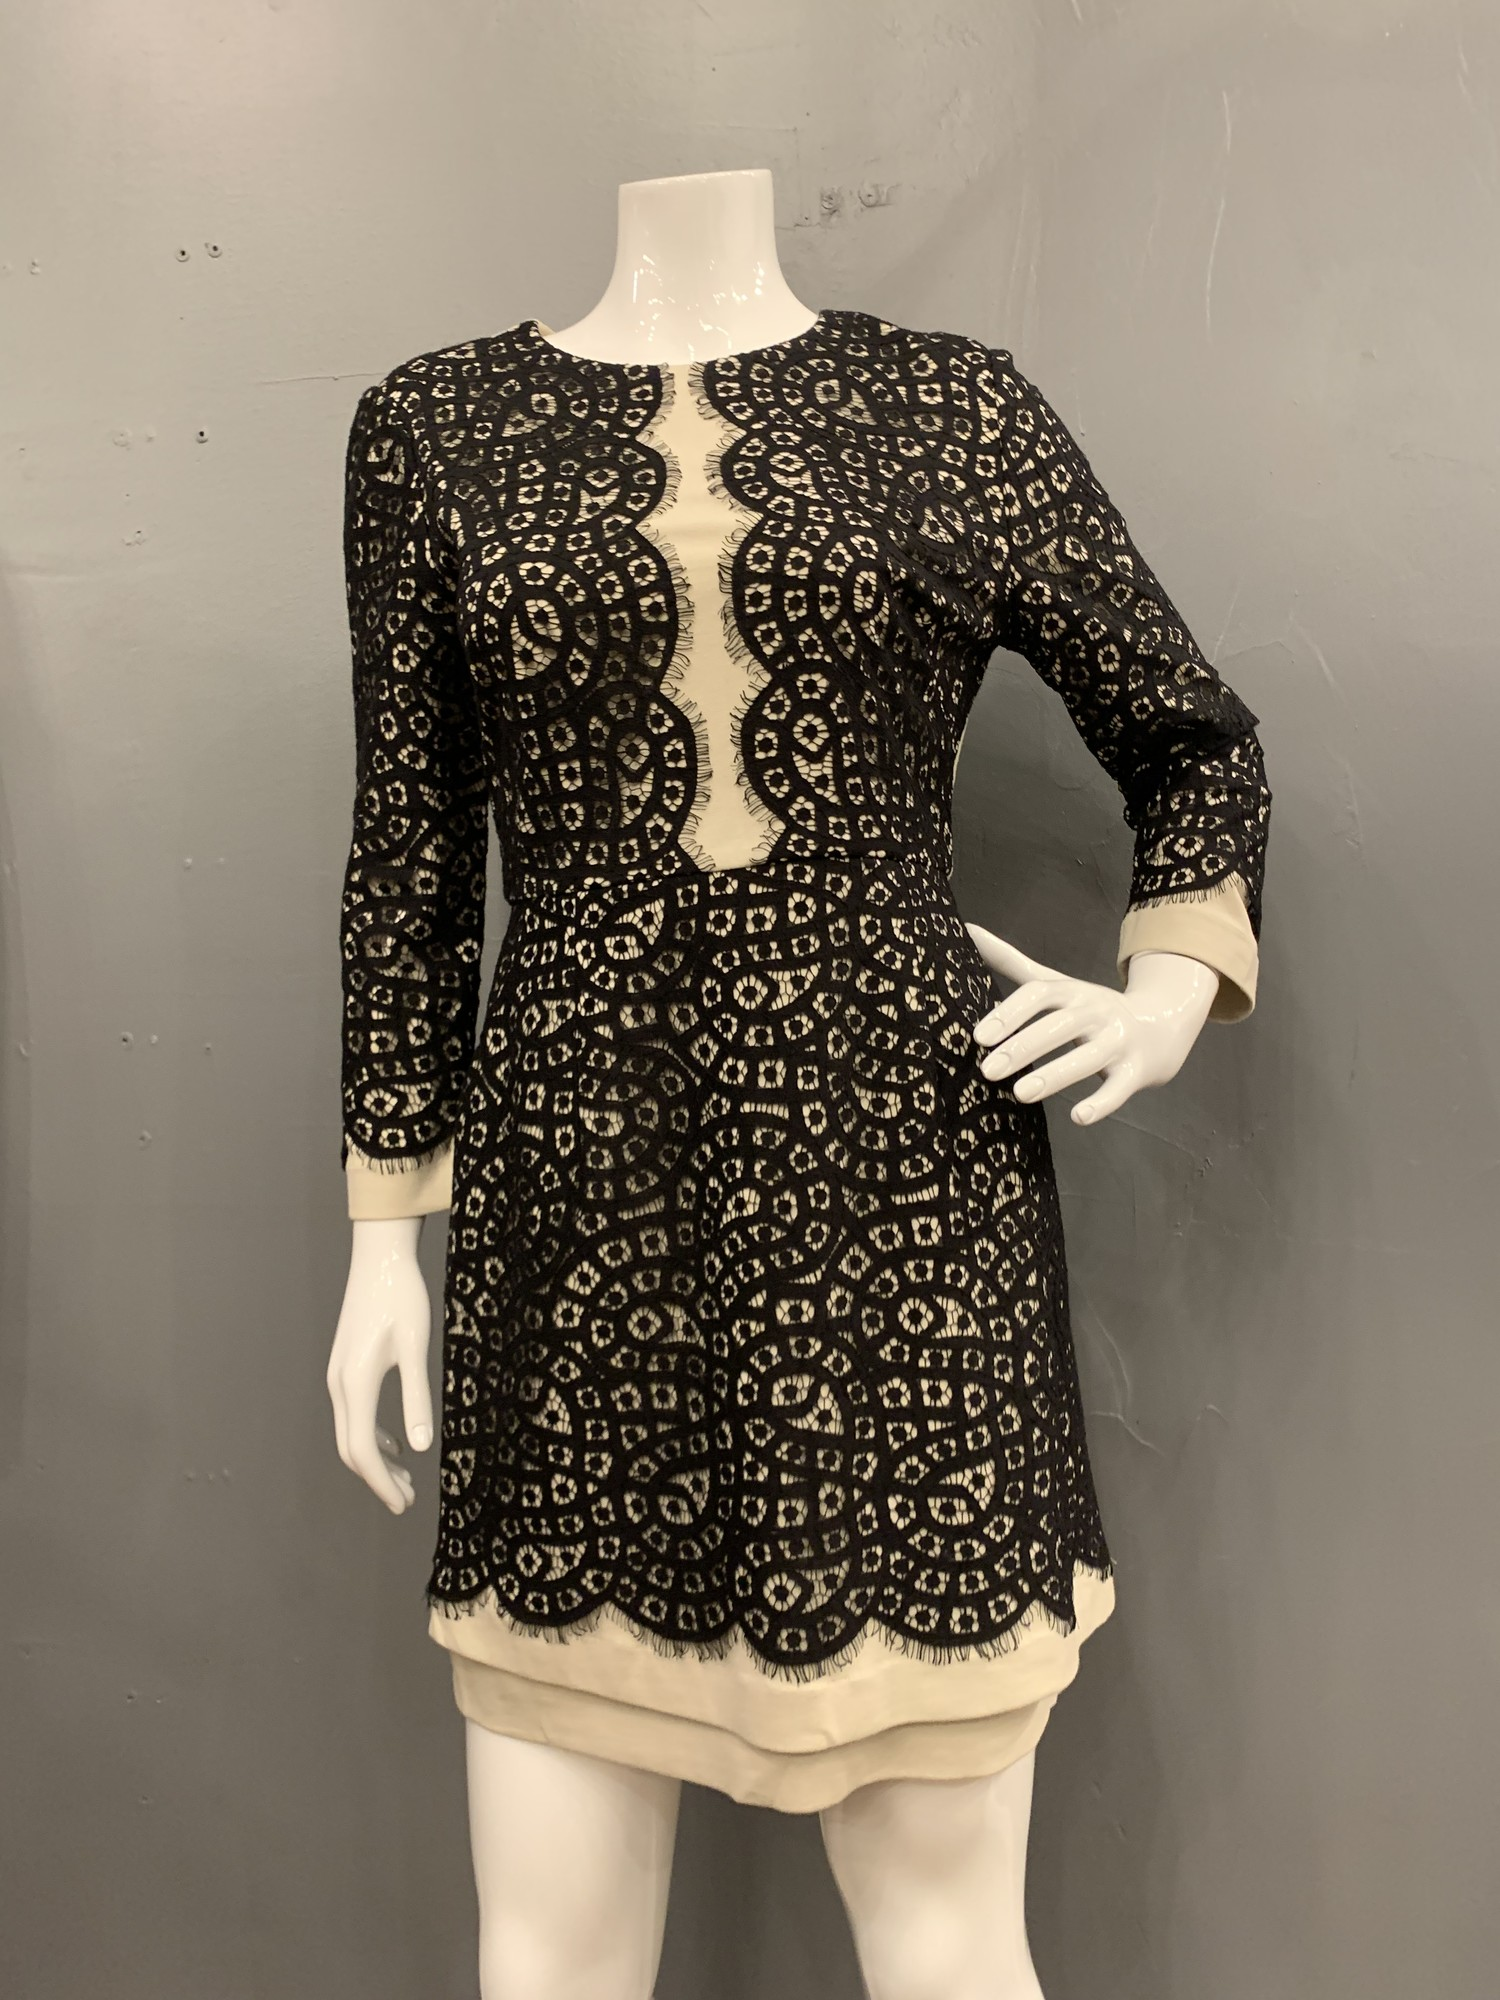 BCBG Eyelet 3/4 Sleeve pocket dress<br /> black/white, Size: 10<br /> new with tags retail $338.